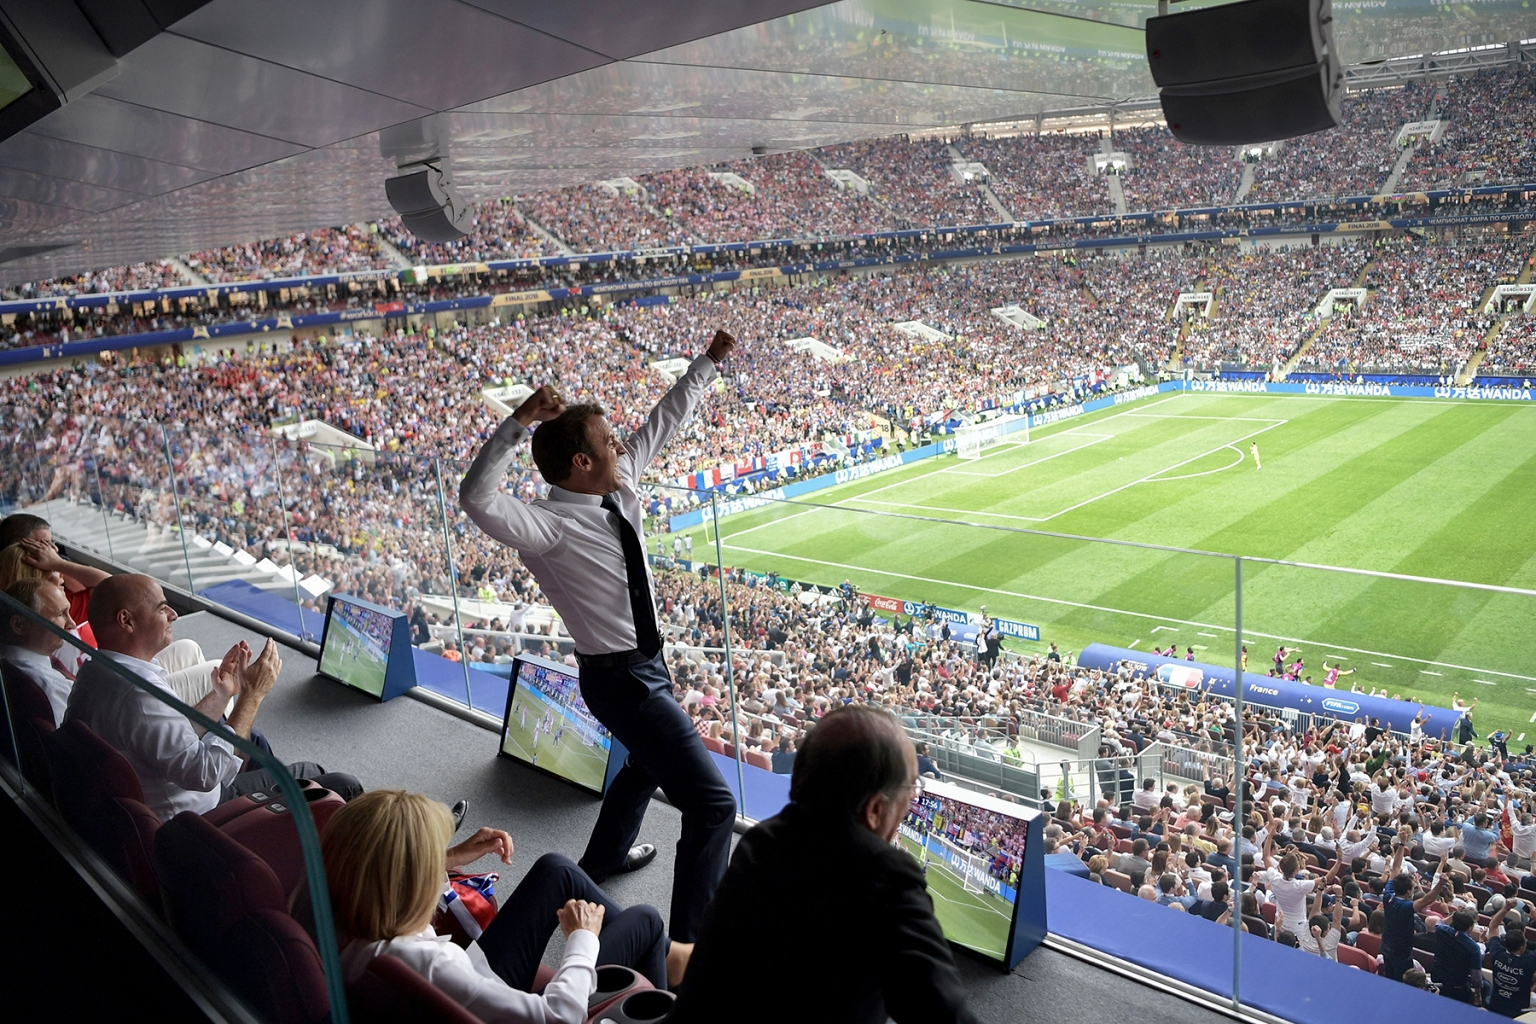 French President Emmanuel Macron reacts during the Russia 2018 World Cup final football match between France and Croatia at the Luzhniki Stadium in Moscow on July 15. ALEXEY NIKOLSKY/AFP/Getty Images